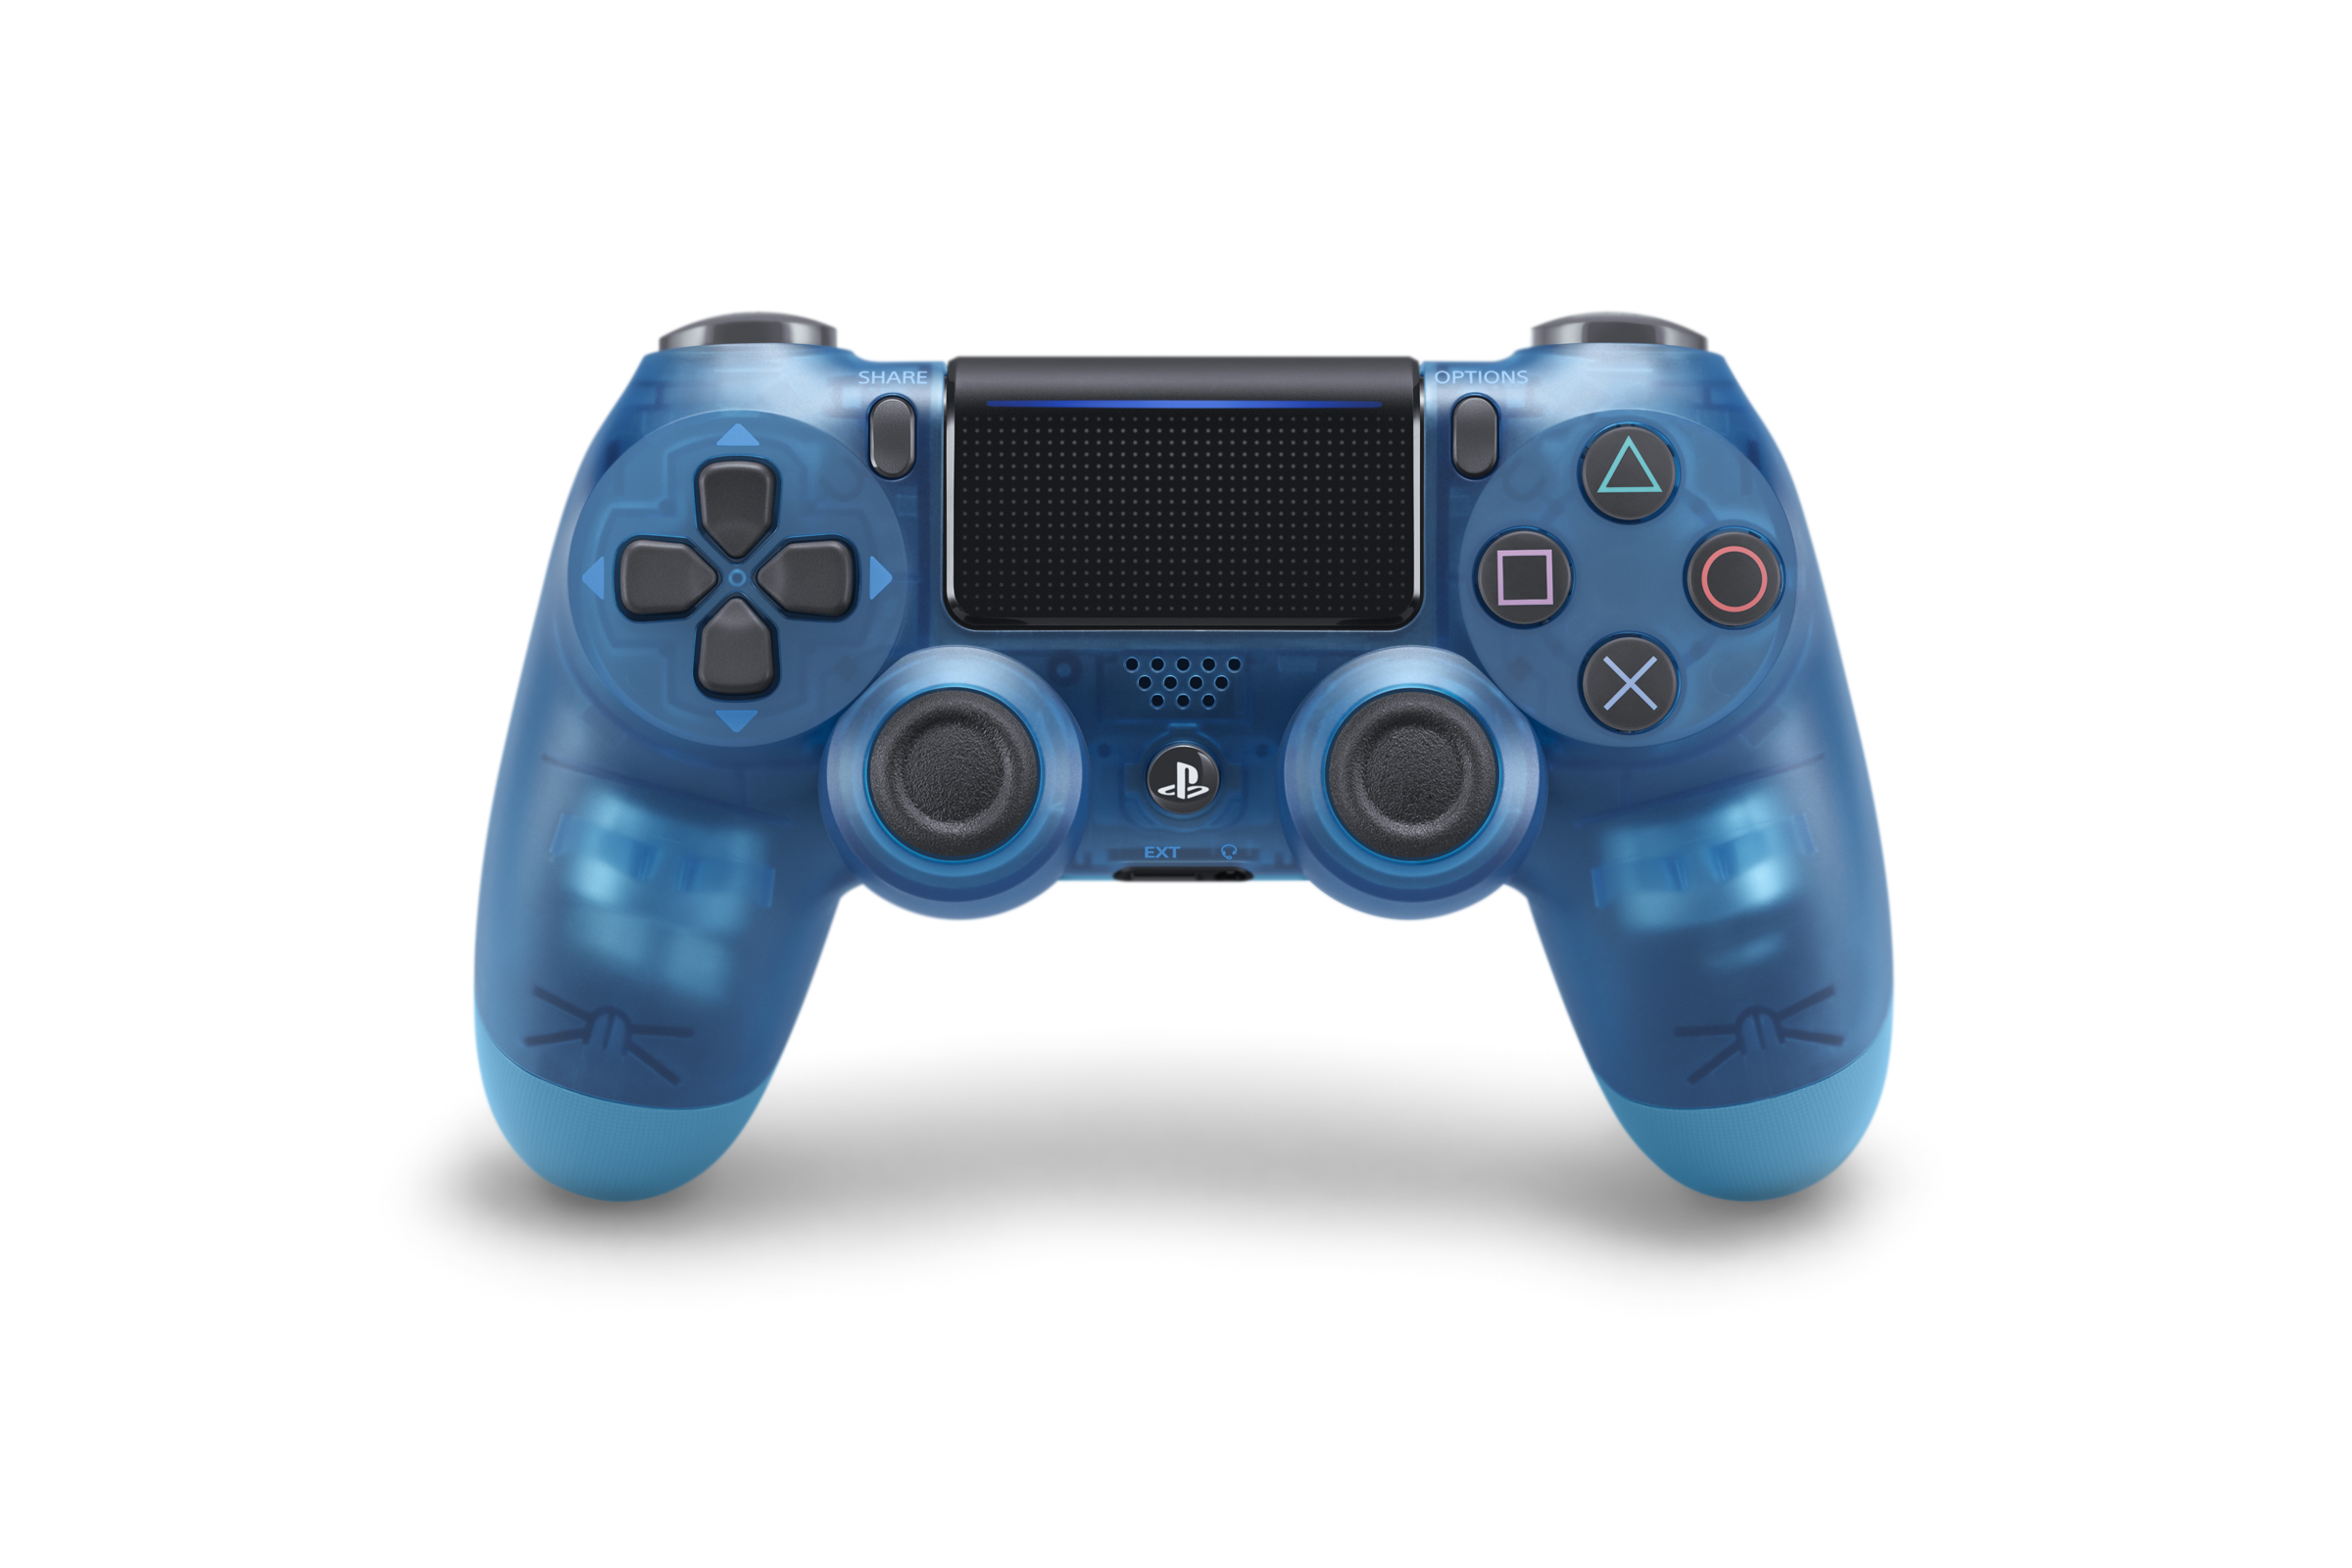 Introducing The Crystal Dualshock 4 Wireless Controller